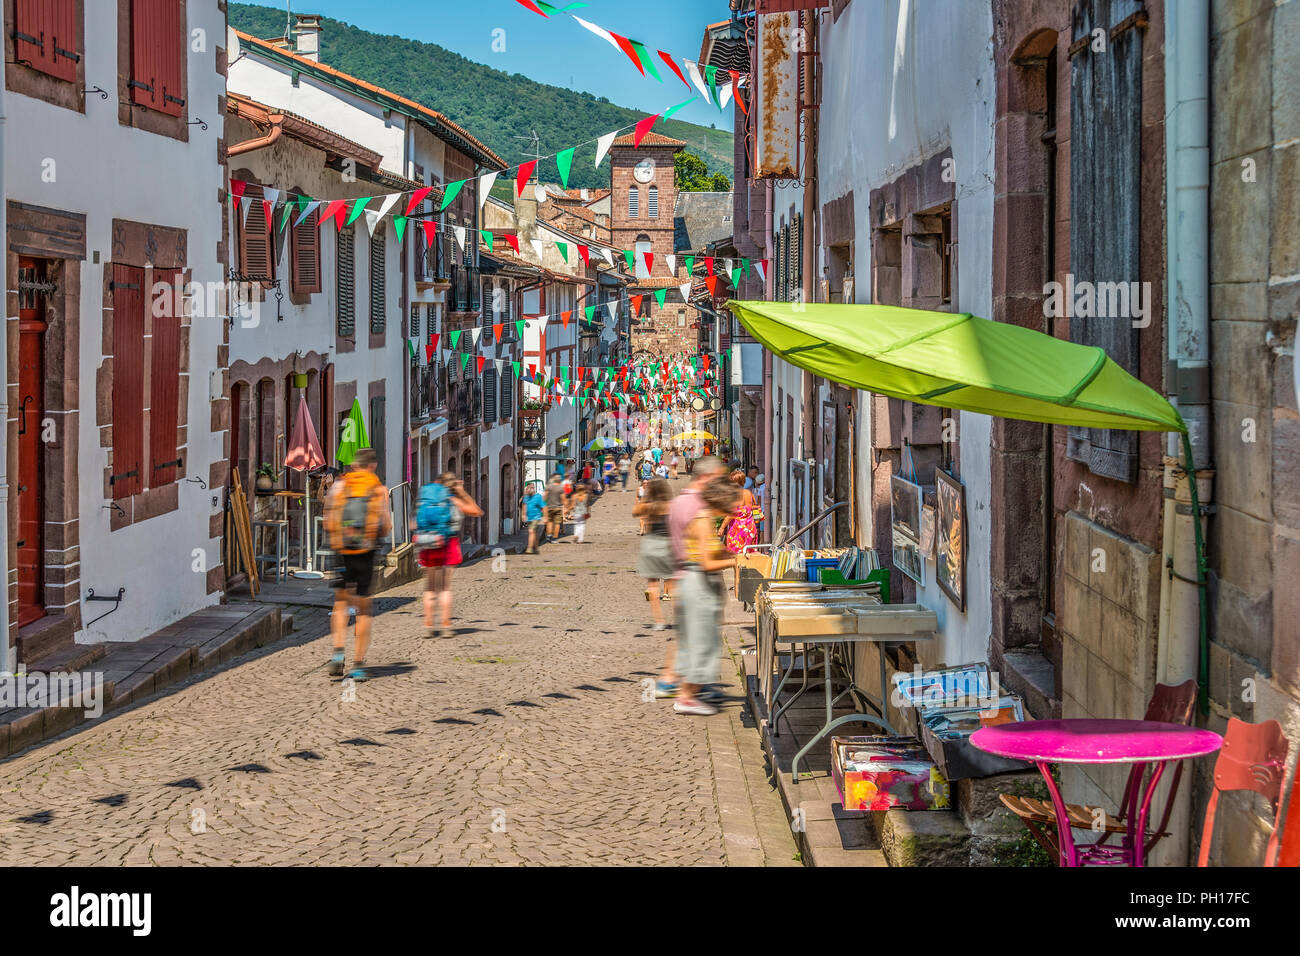 Main street of the medieval village Saint Jean Pied de Port in the Pyrenees. France. - Stock Image